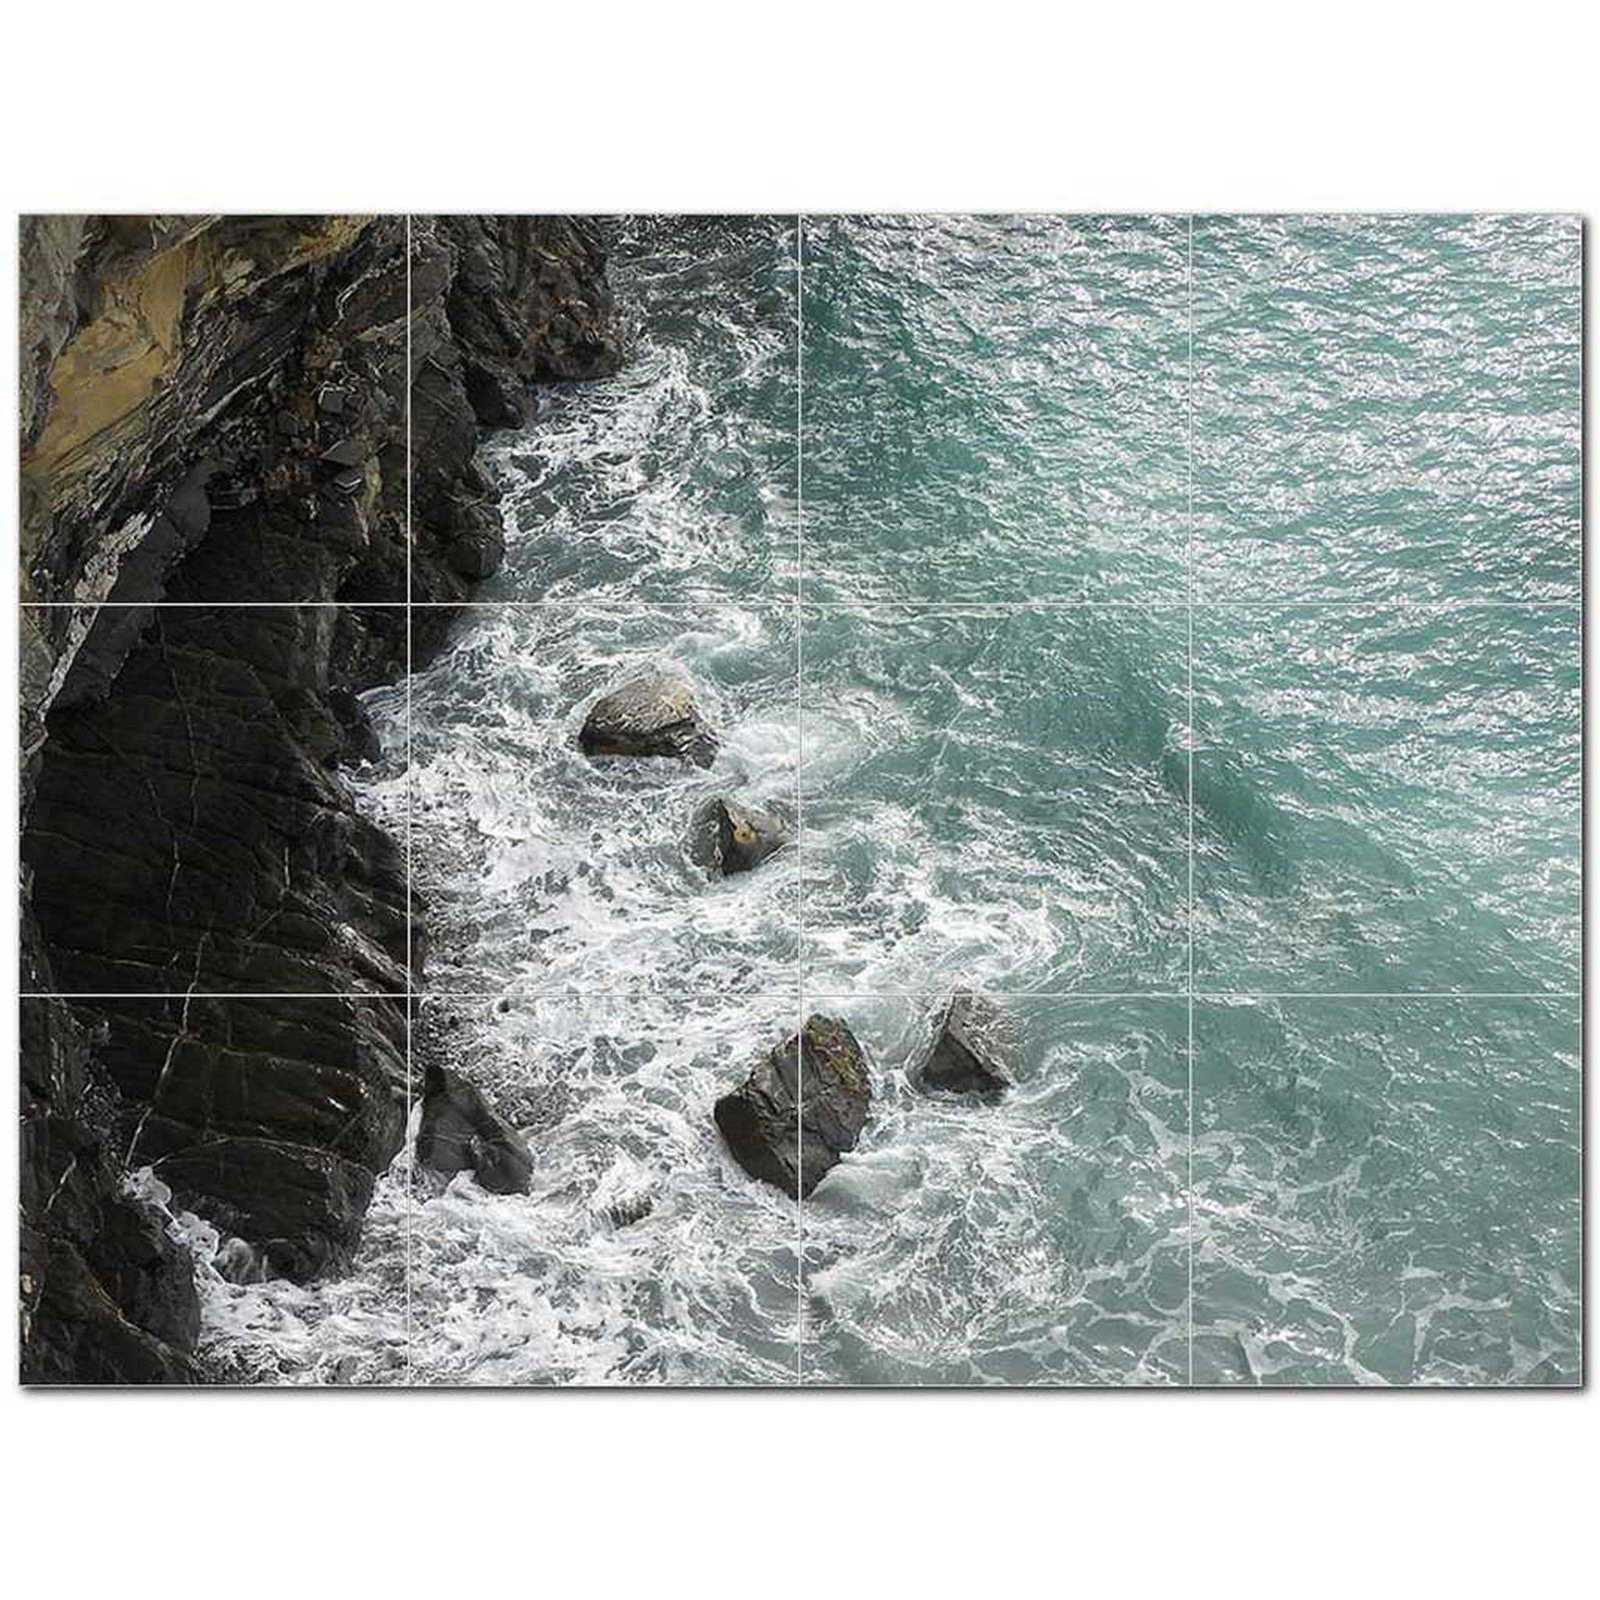 Primary image for Ocean Waves Ceramic Tile Mural Kitchen Backsplash Bathroom Shower BAZ405675